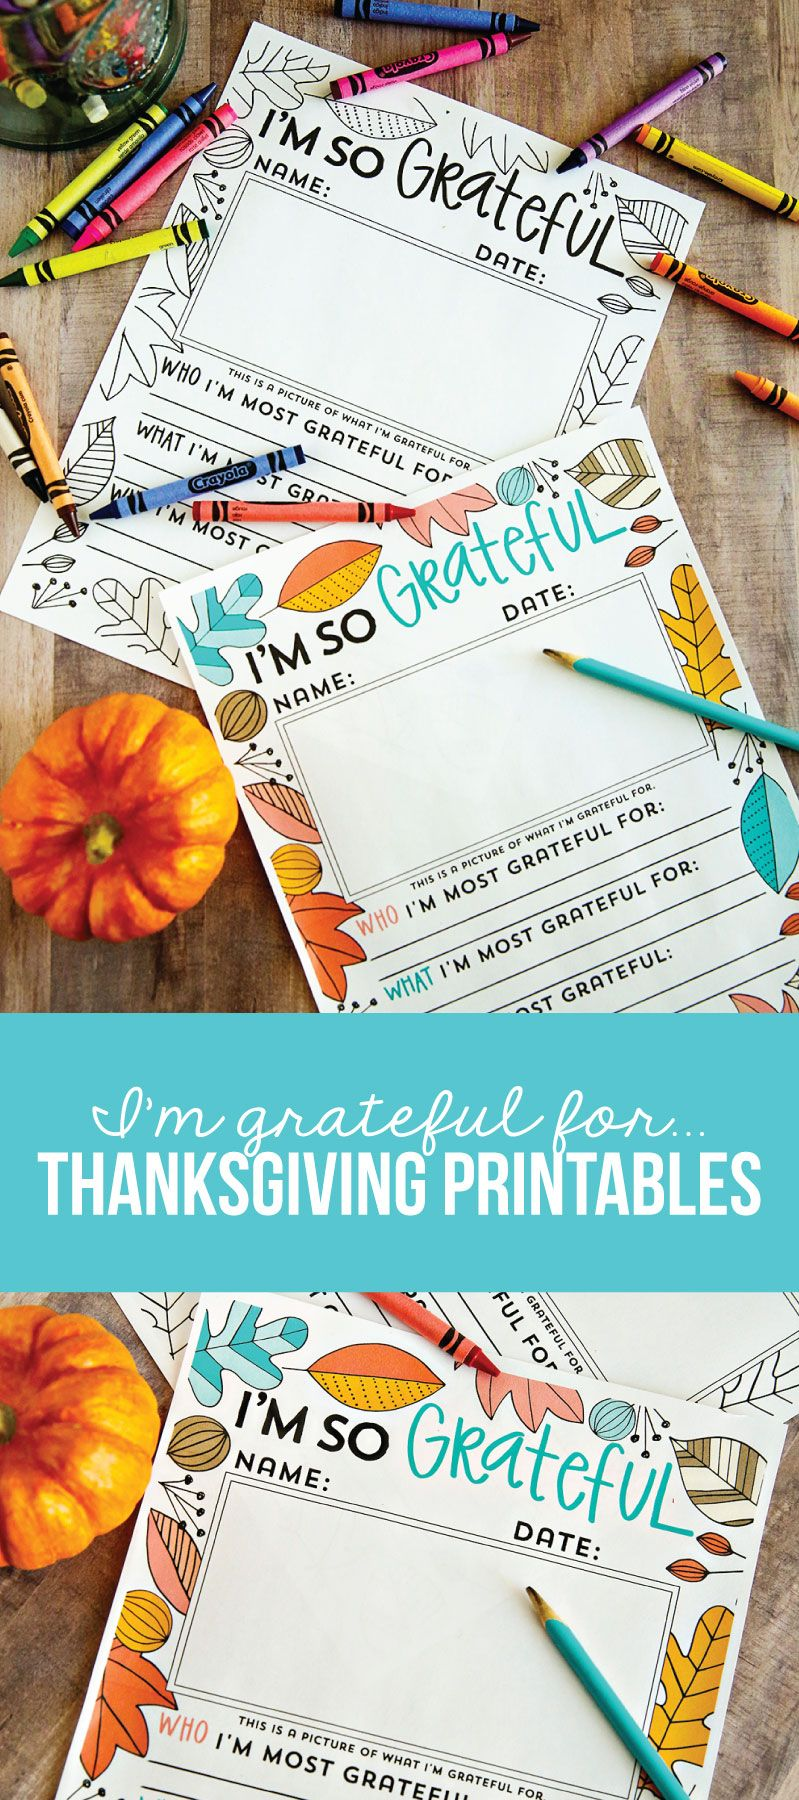 I\'m so grateful... Thanksgiving Coloring Pages | "|799|1800|?|cc65dbe9b5963aaa00acc18d23d75ff3|False|UNLIKELY|0.3339613378047943